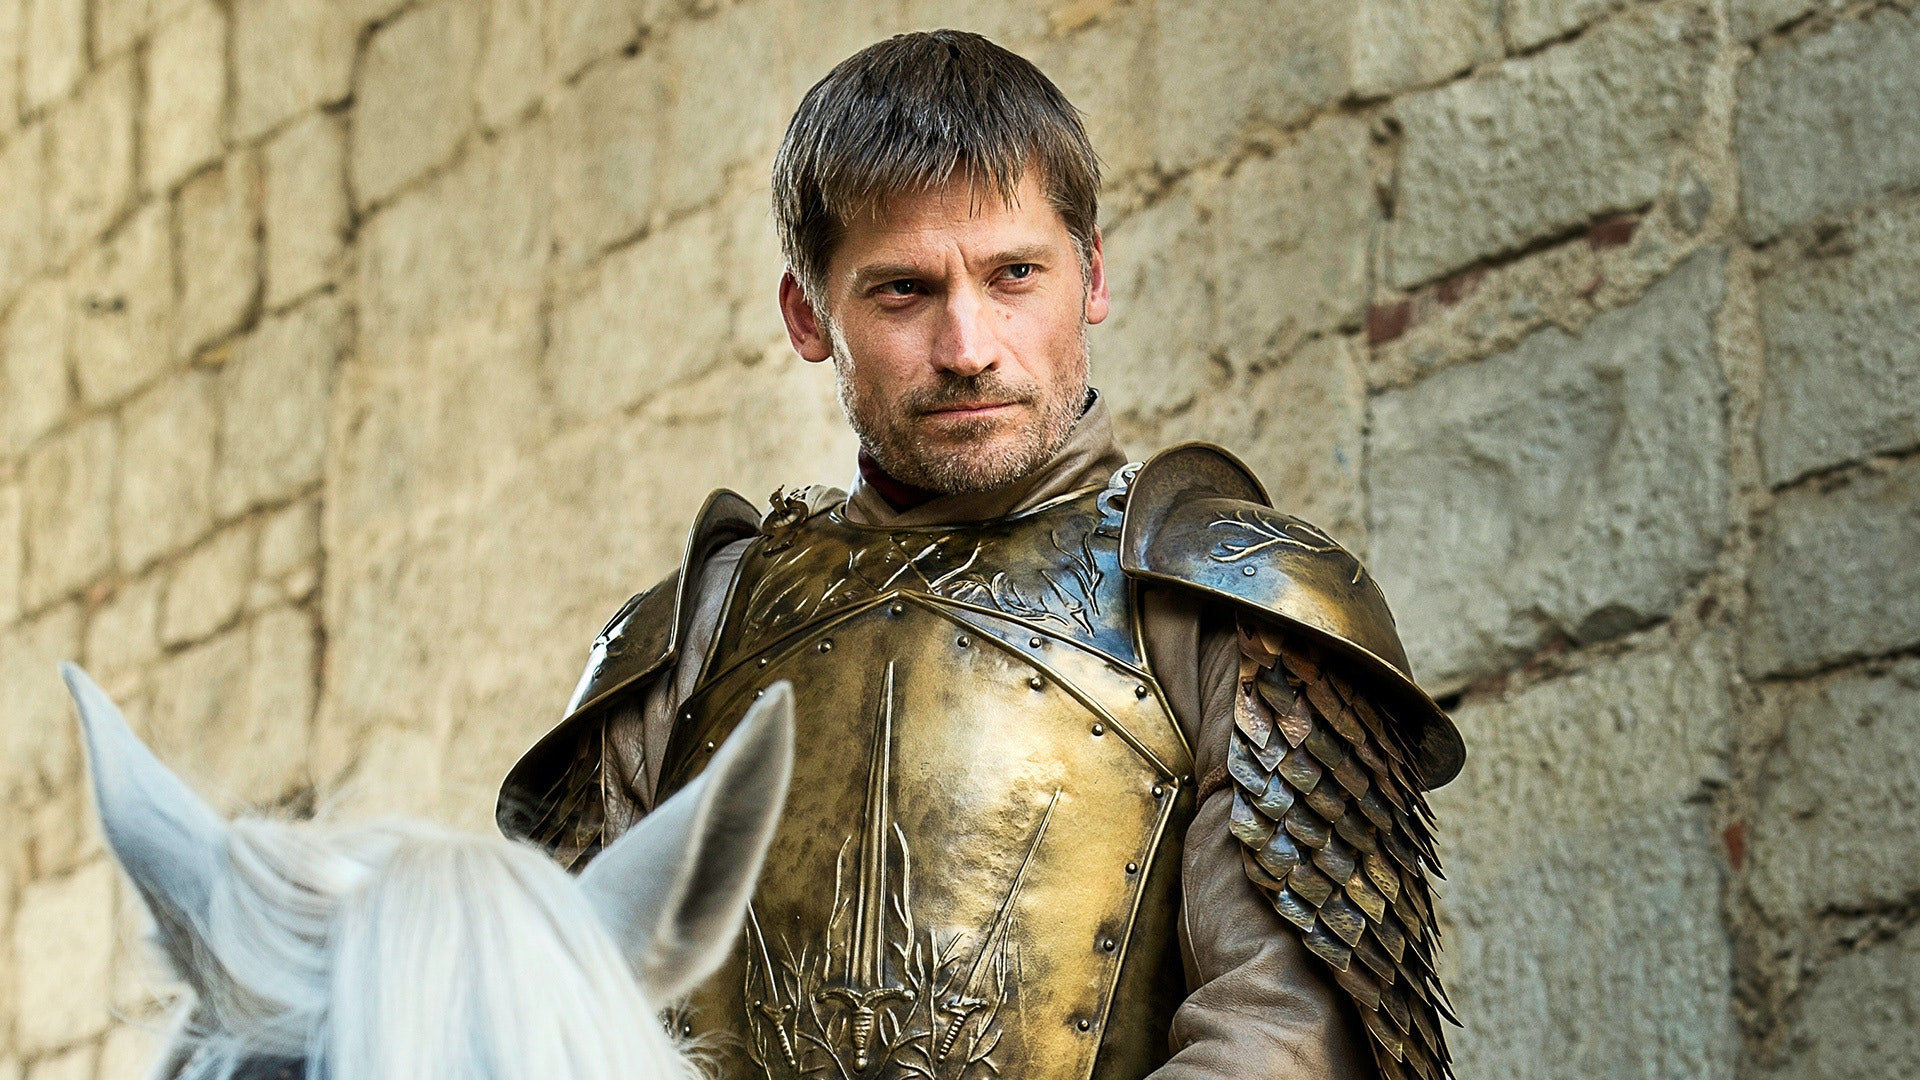 All the Clues We Have That Jaime Is Azor Ahai in 'Game of Thrones' Season 8